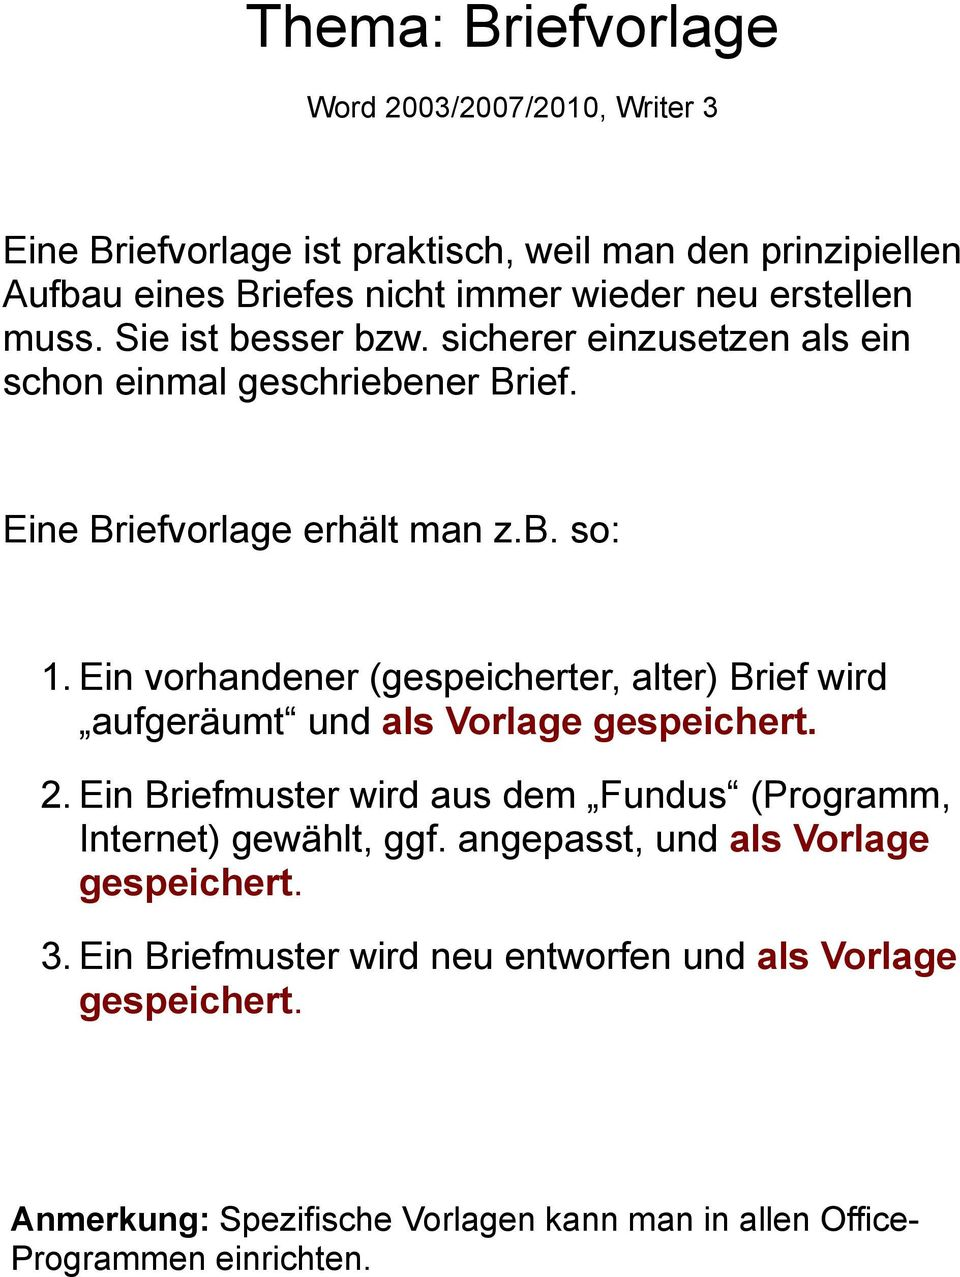 Thema Briefvorlage Word 200320072010 Writer 3 Pdf